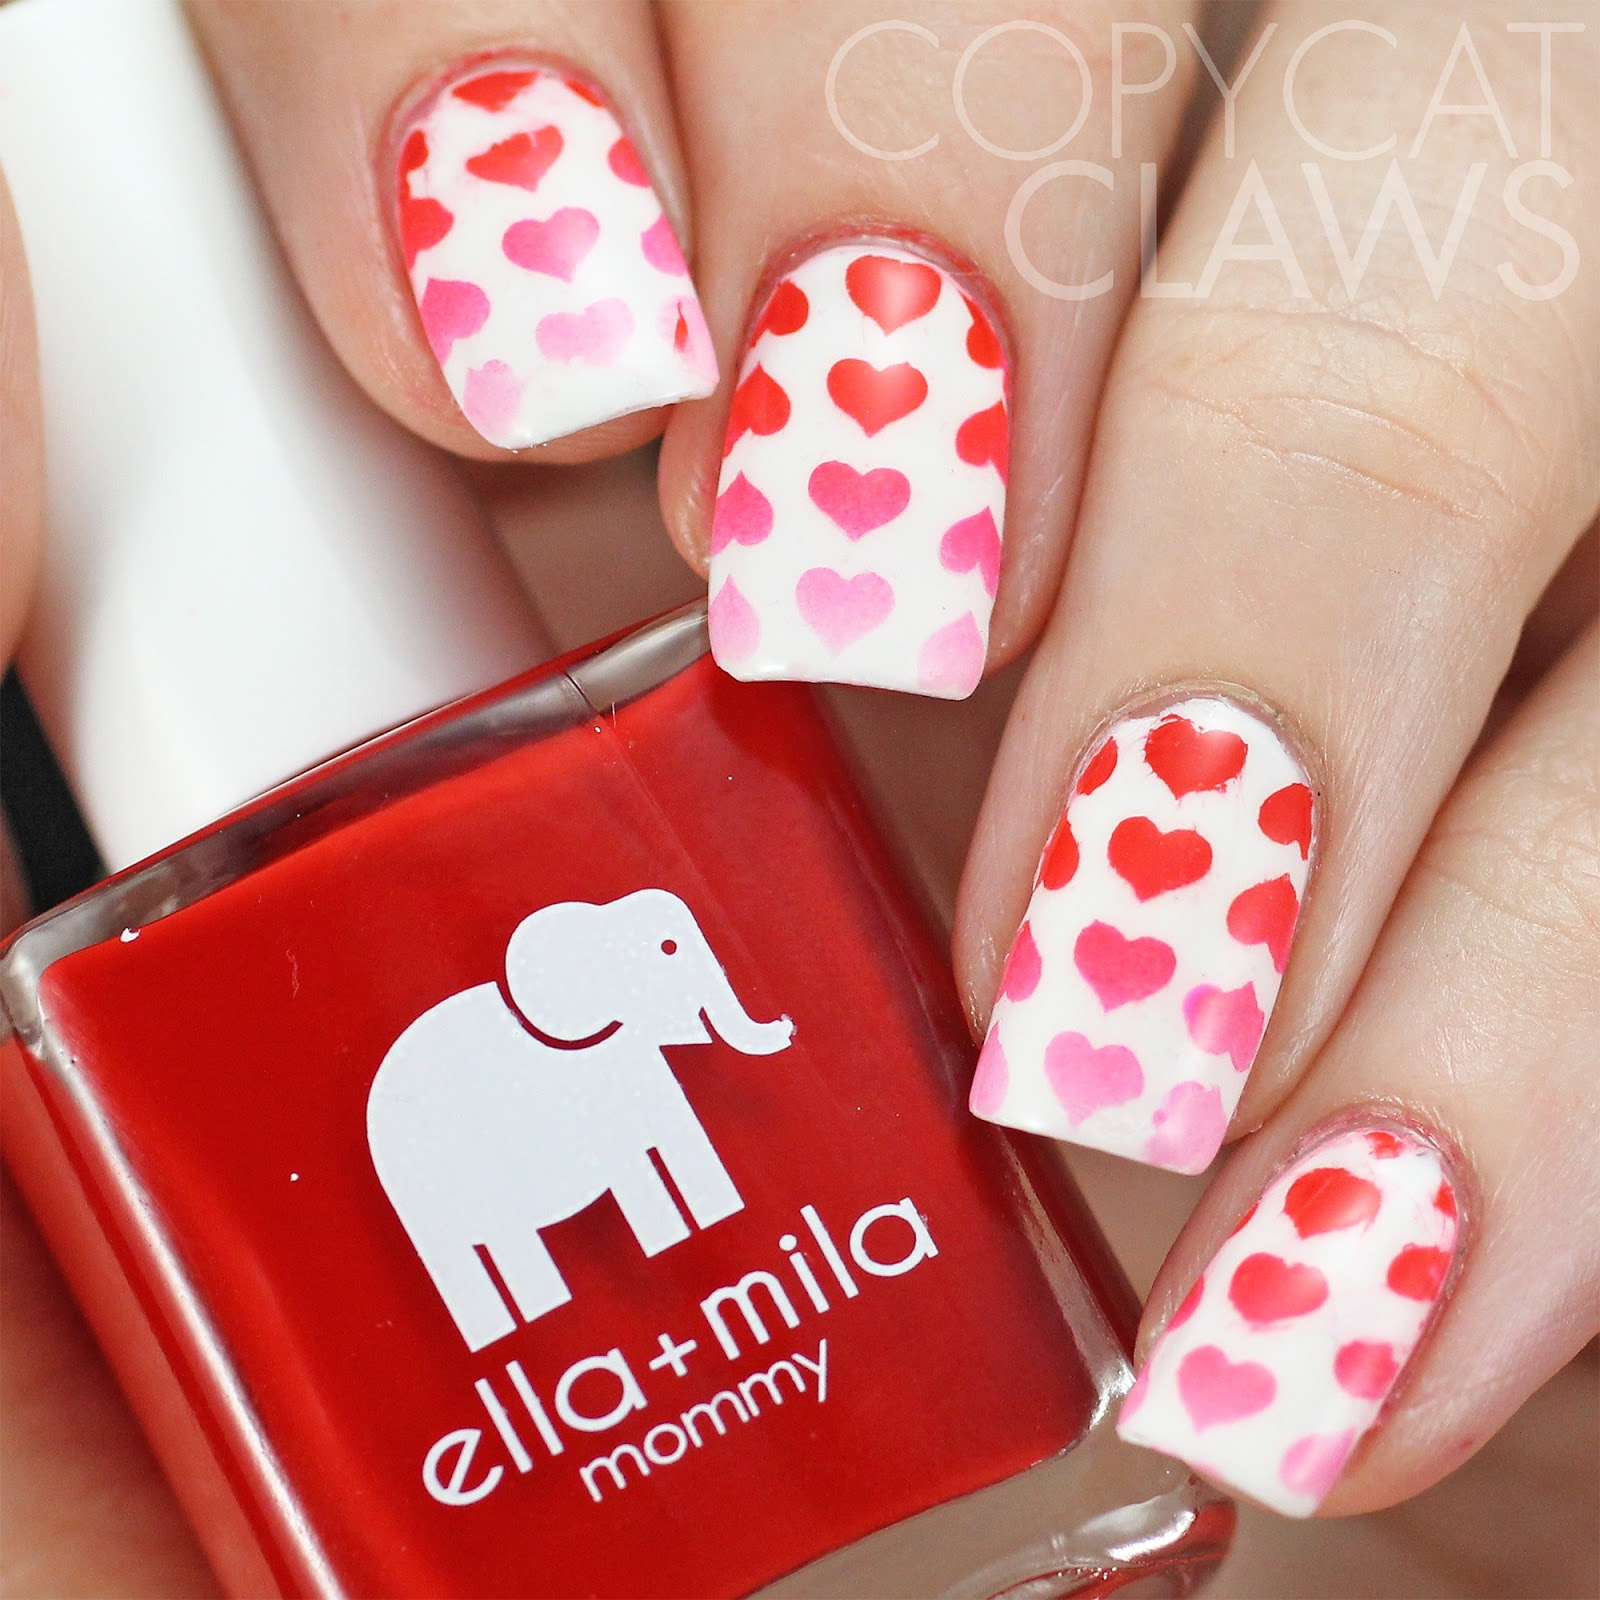 Copycat Claws: Sunday Stamping - Valentine\'s Day